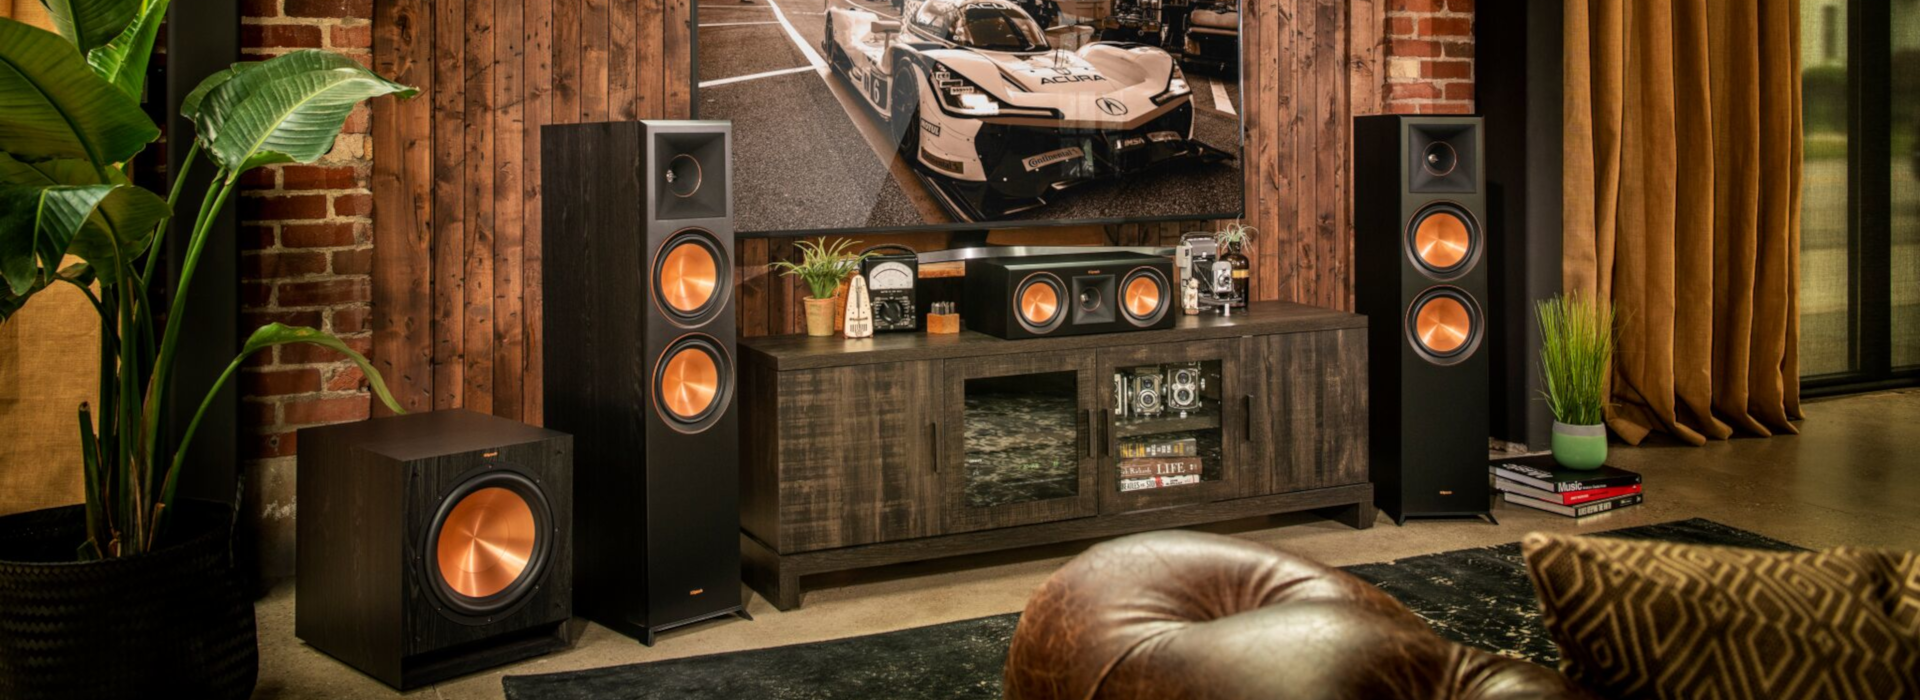 New Klipsch Reference Premier Speakers NOW IN STOCK AND READY TO SHIP!